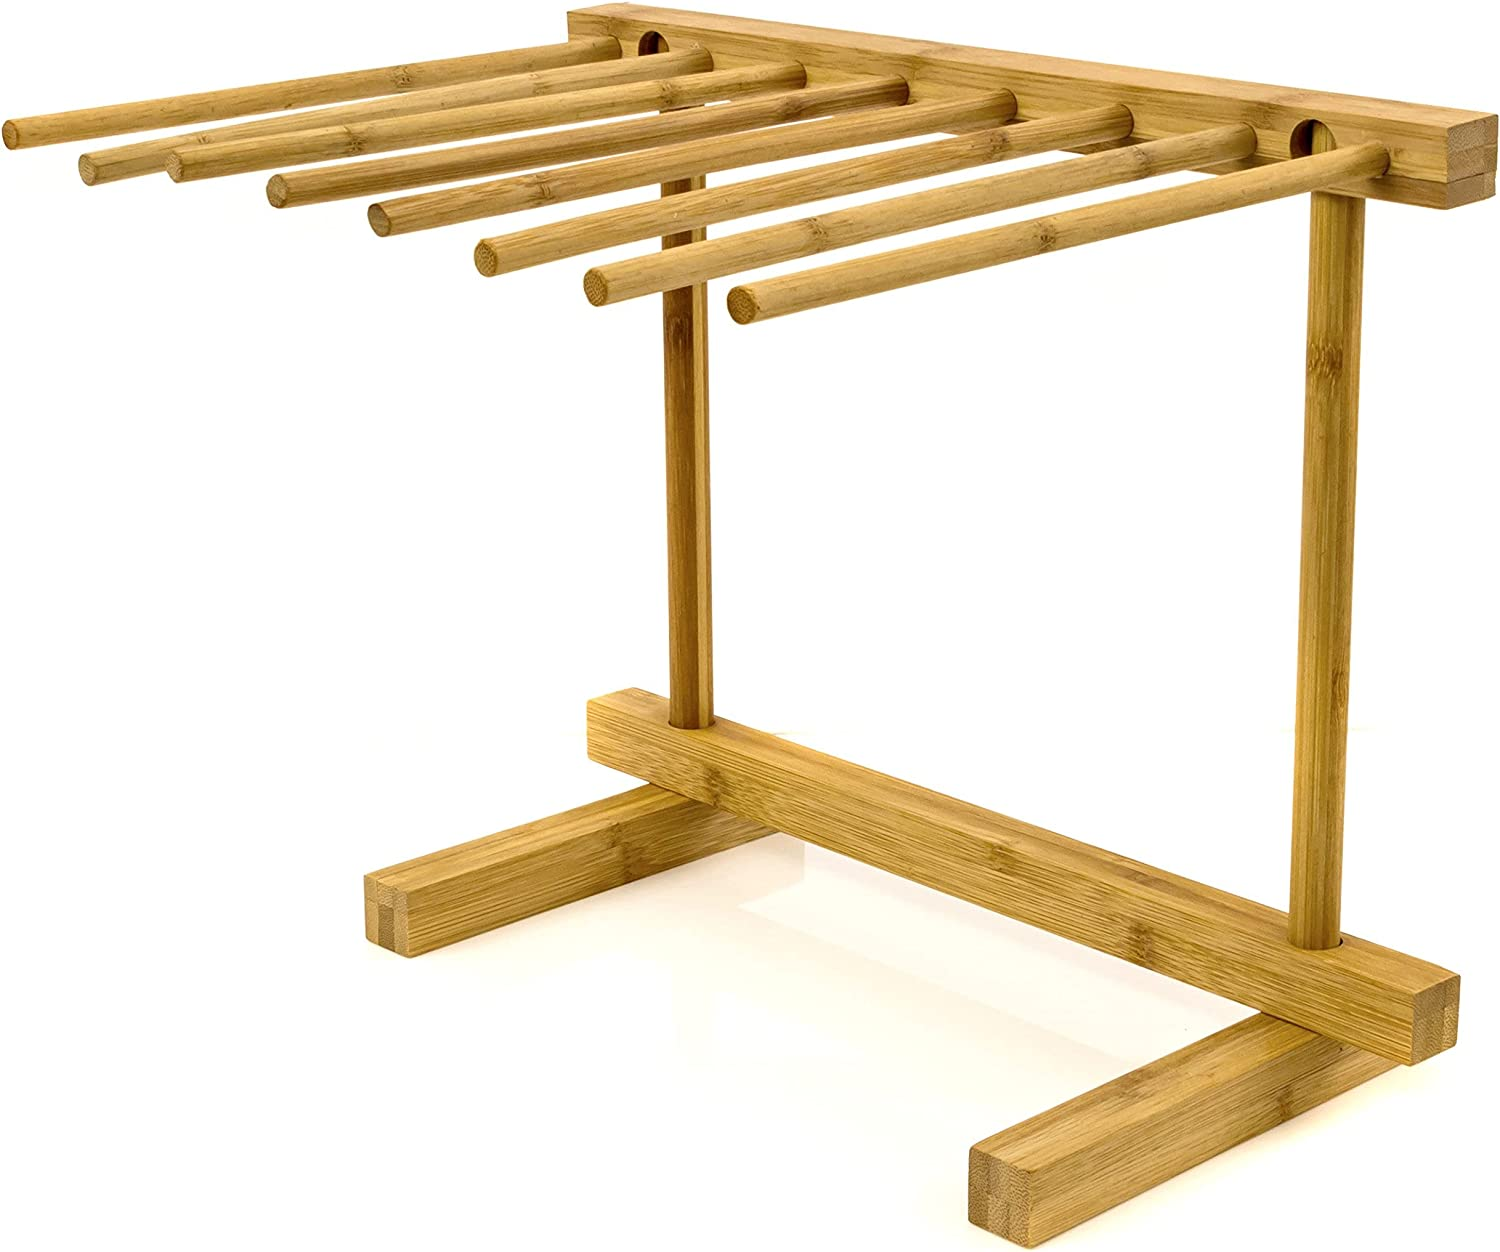 Intriom Bamboo Pasta Colorado Springs Mall Drying Rack Stan and Super sale Spaghetti Dryer